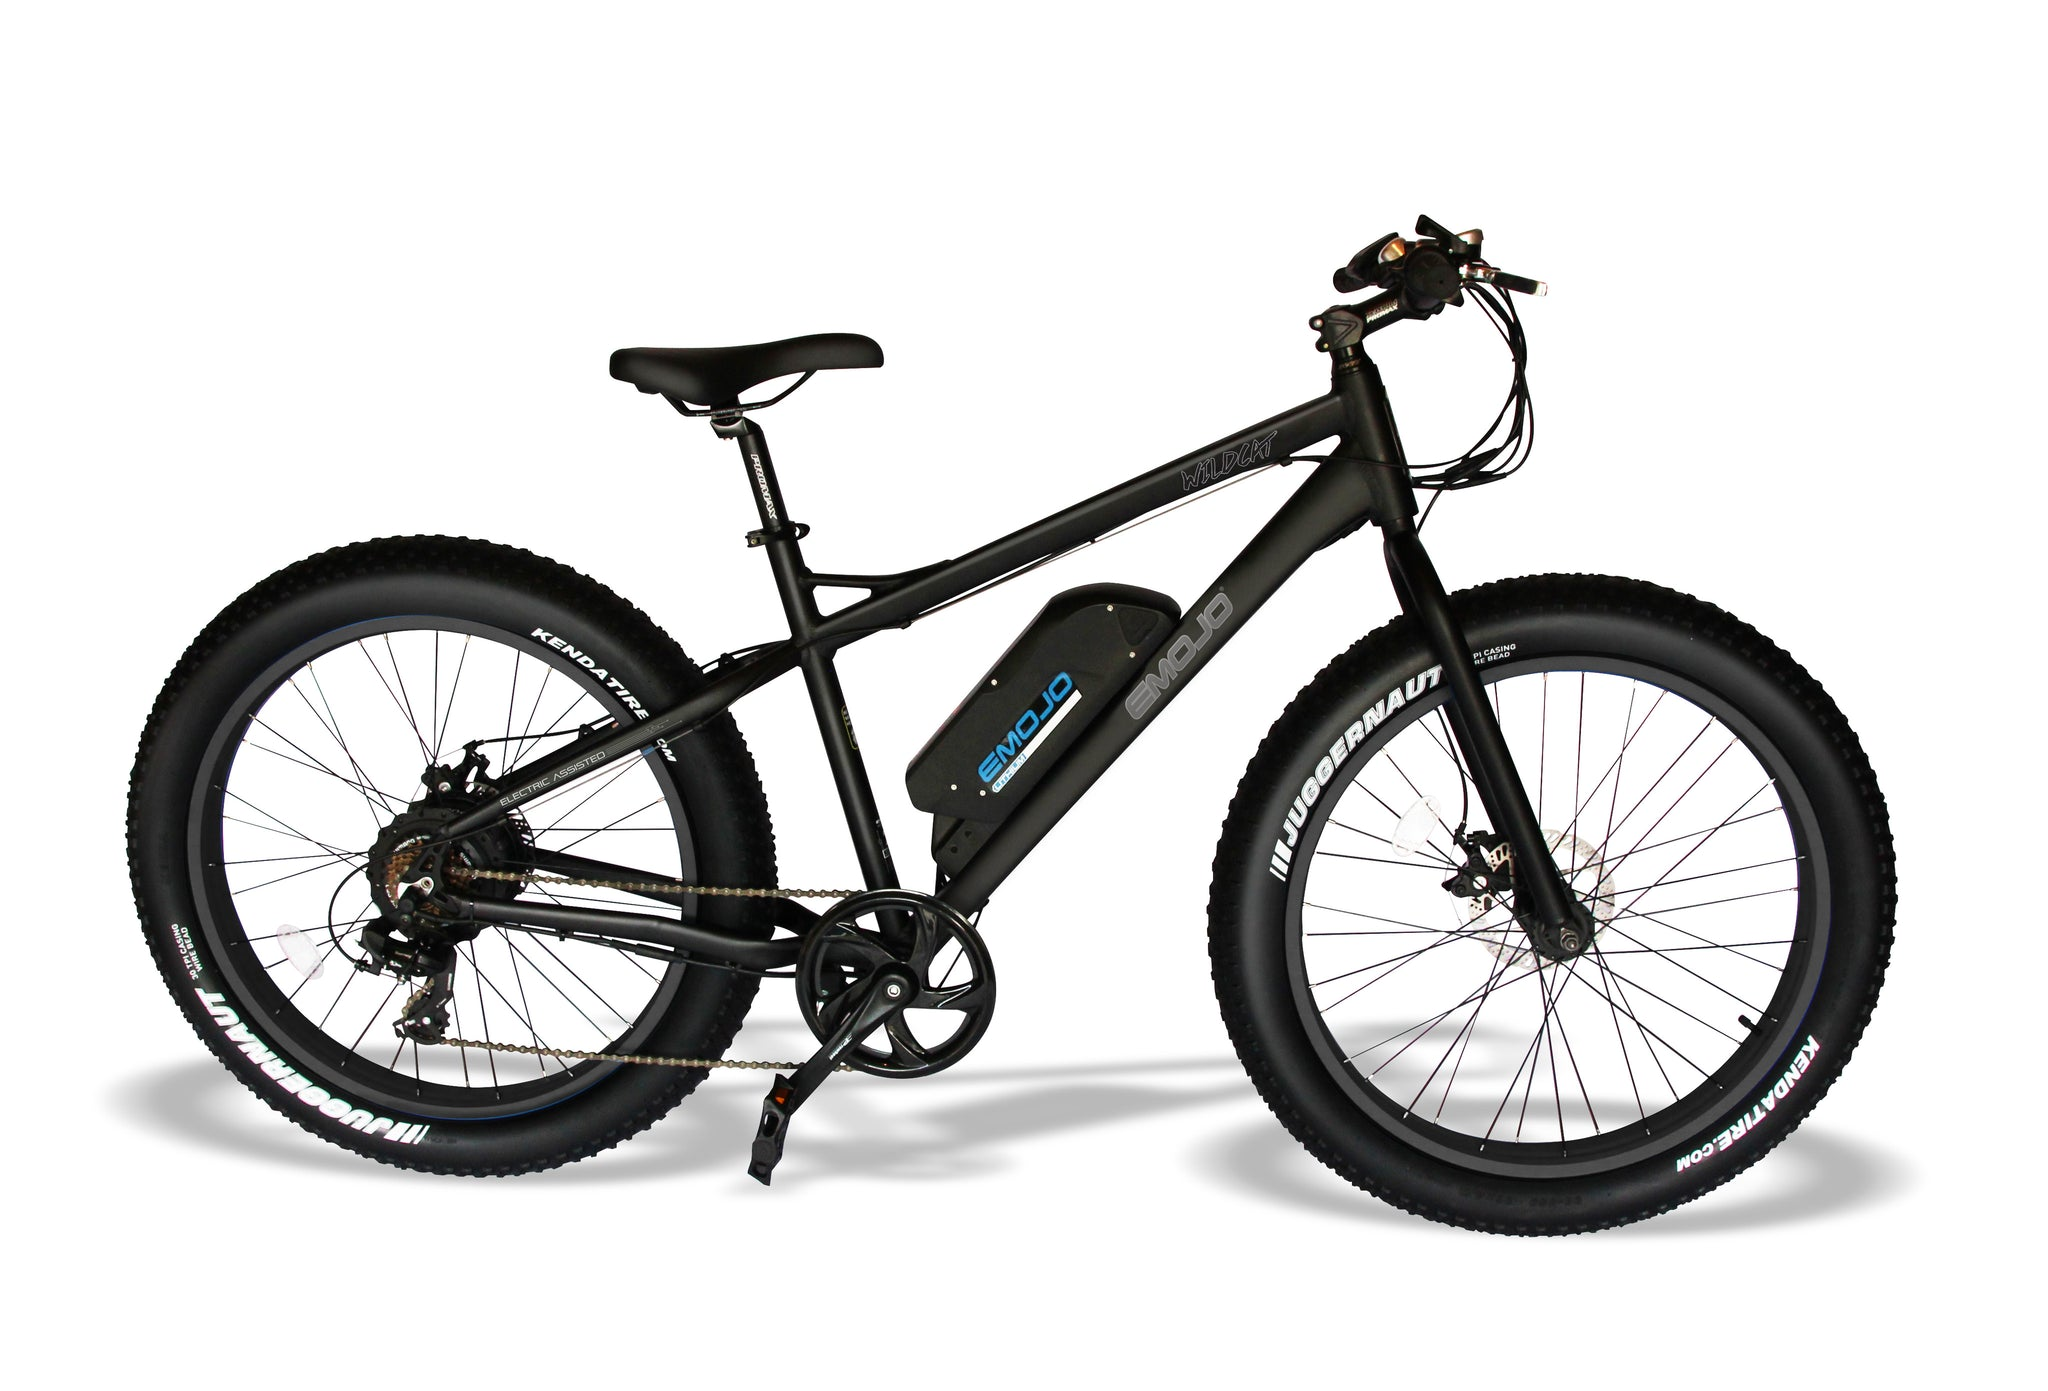 81e92a2d849 ORDER YOUR EMOJO WILDCAT ELECTRIC BIKE TODAY AT THE ELECTRIC BIKE SHOP  ONLINE